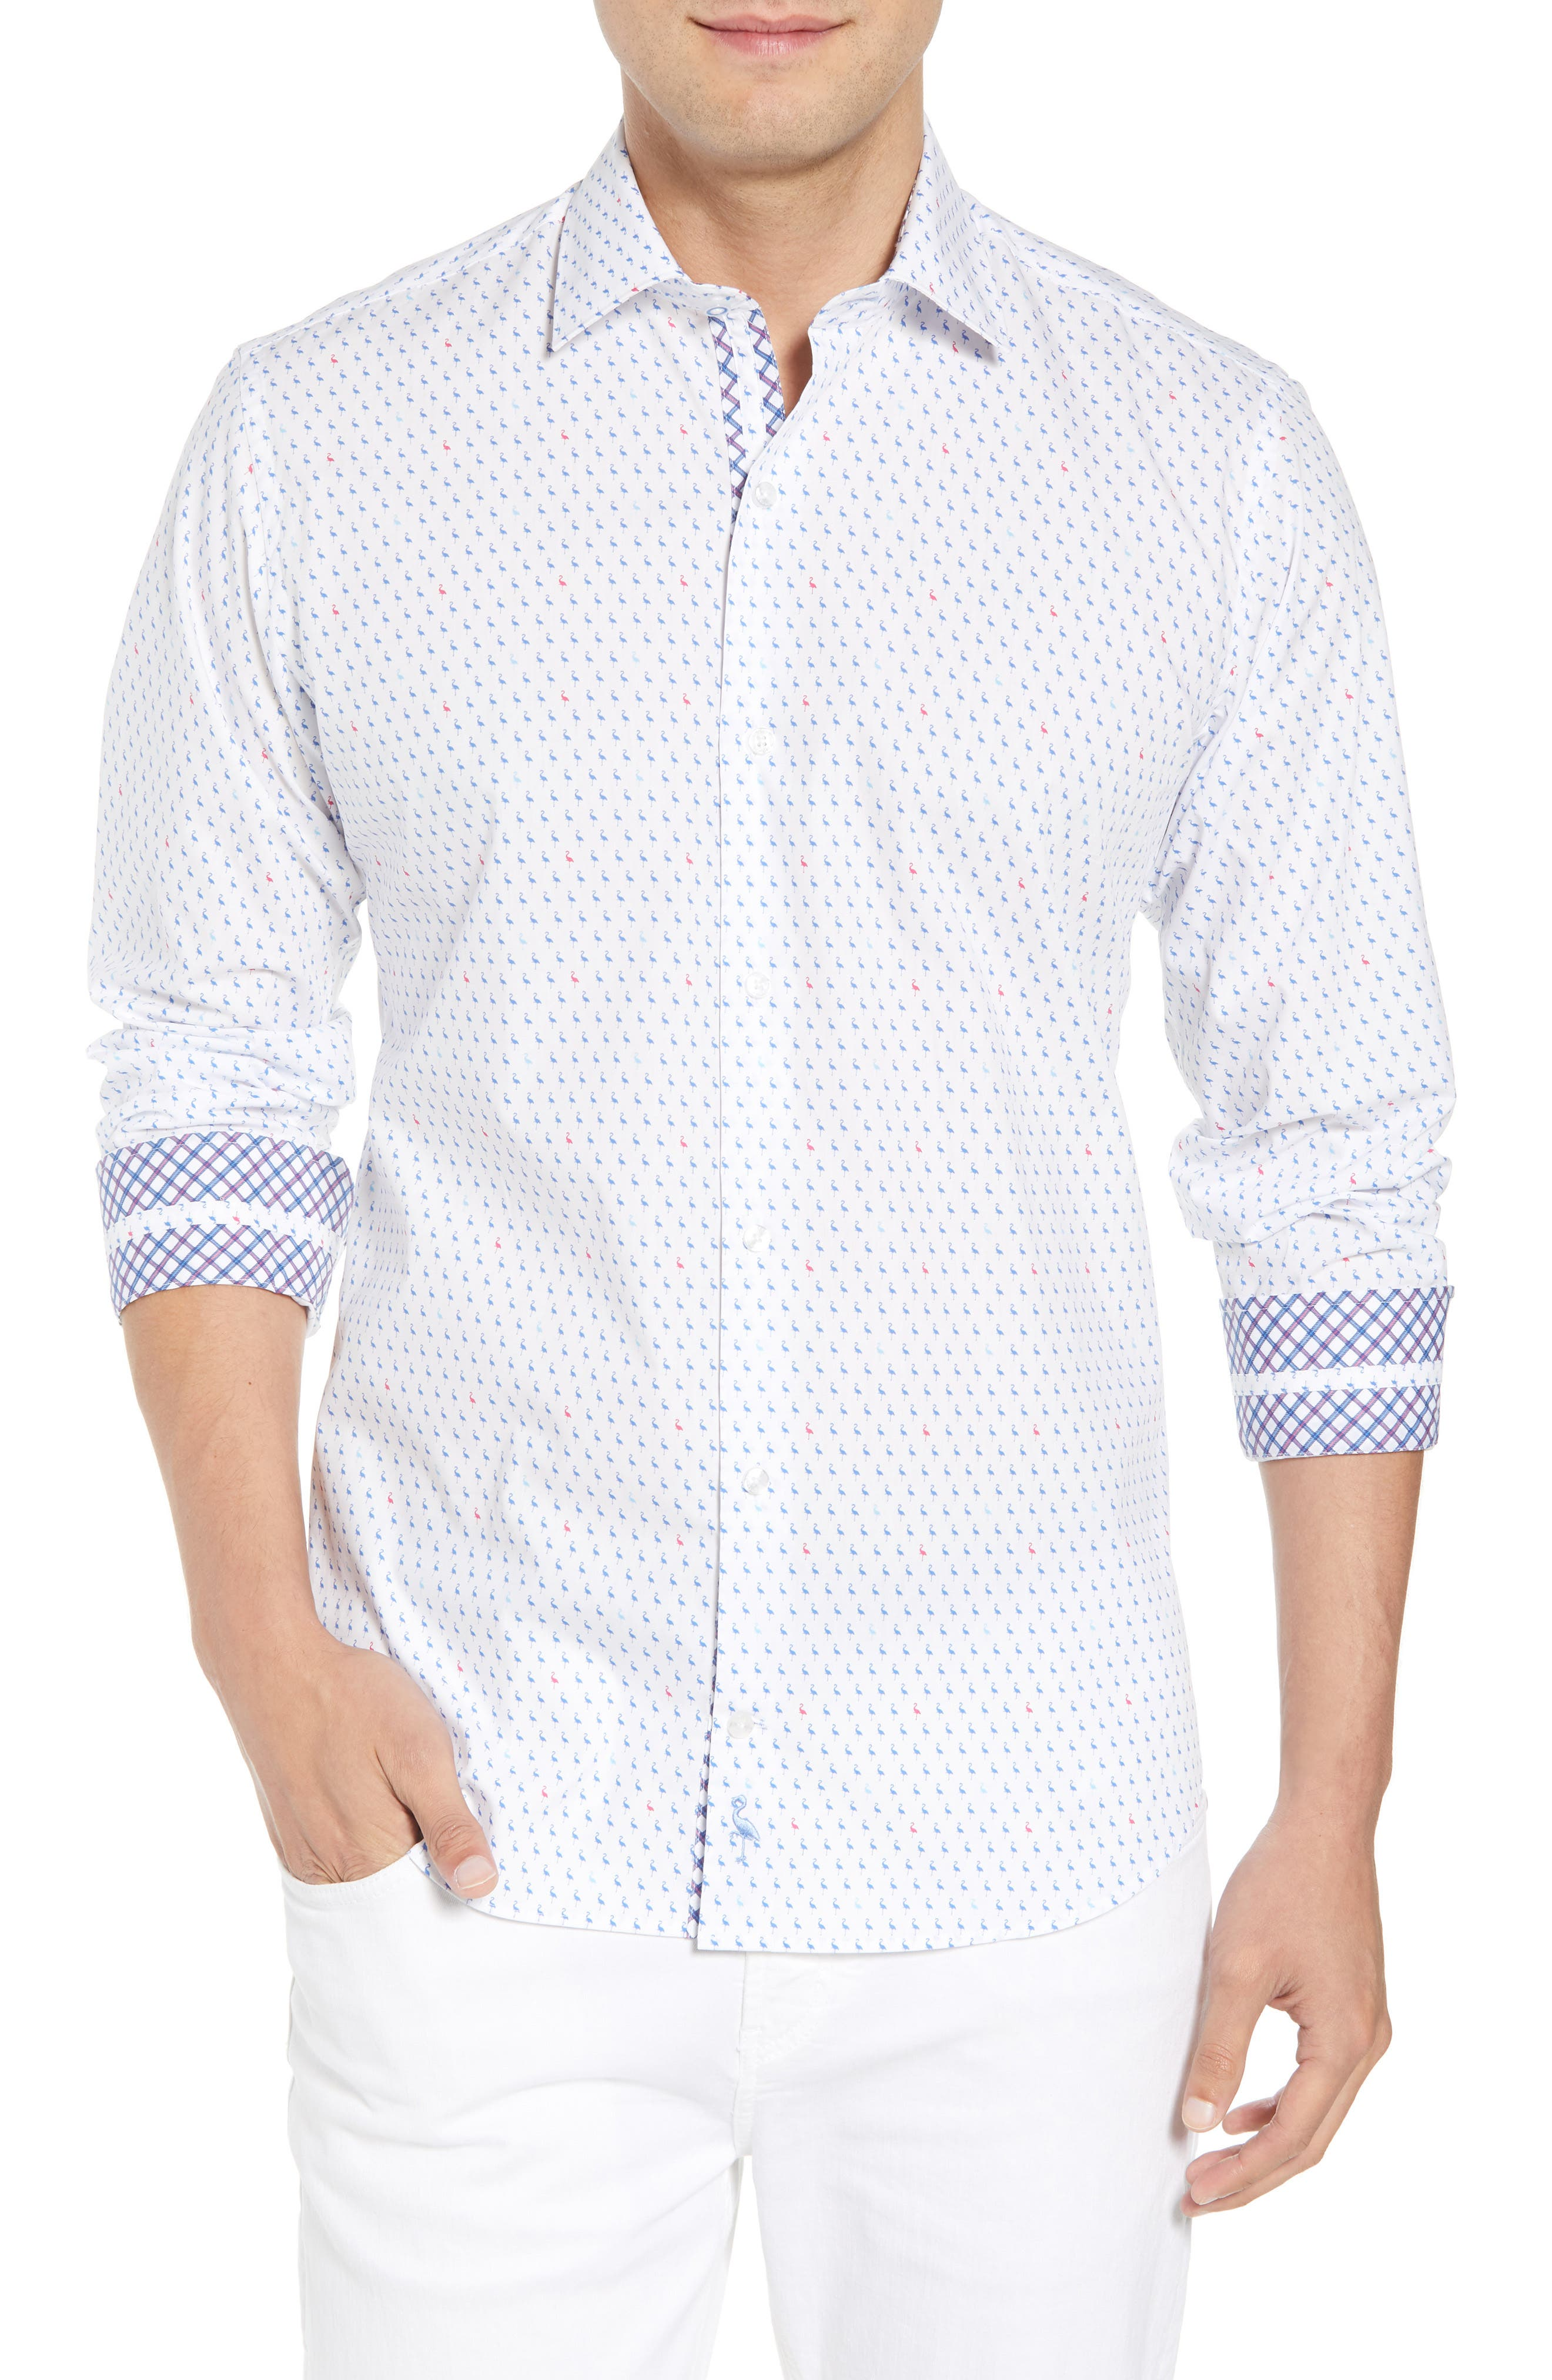 Auden Regular Fit Print Sport Shirt,                             Main thumbnail 1, color,                             490